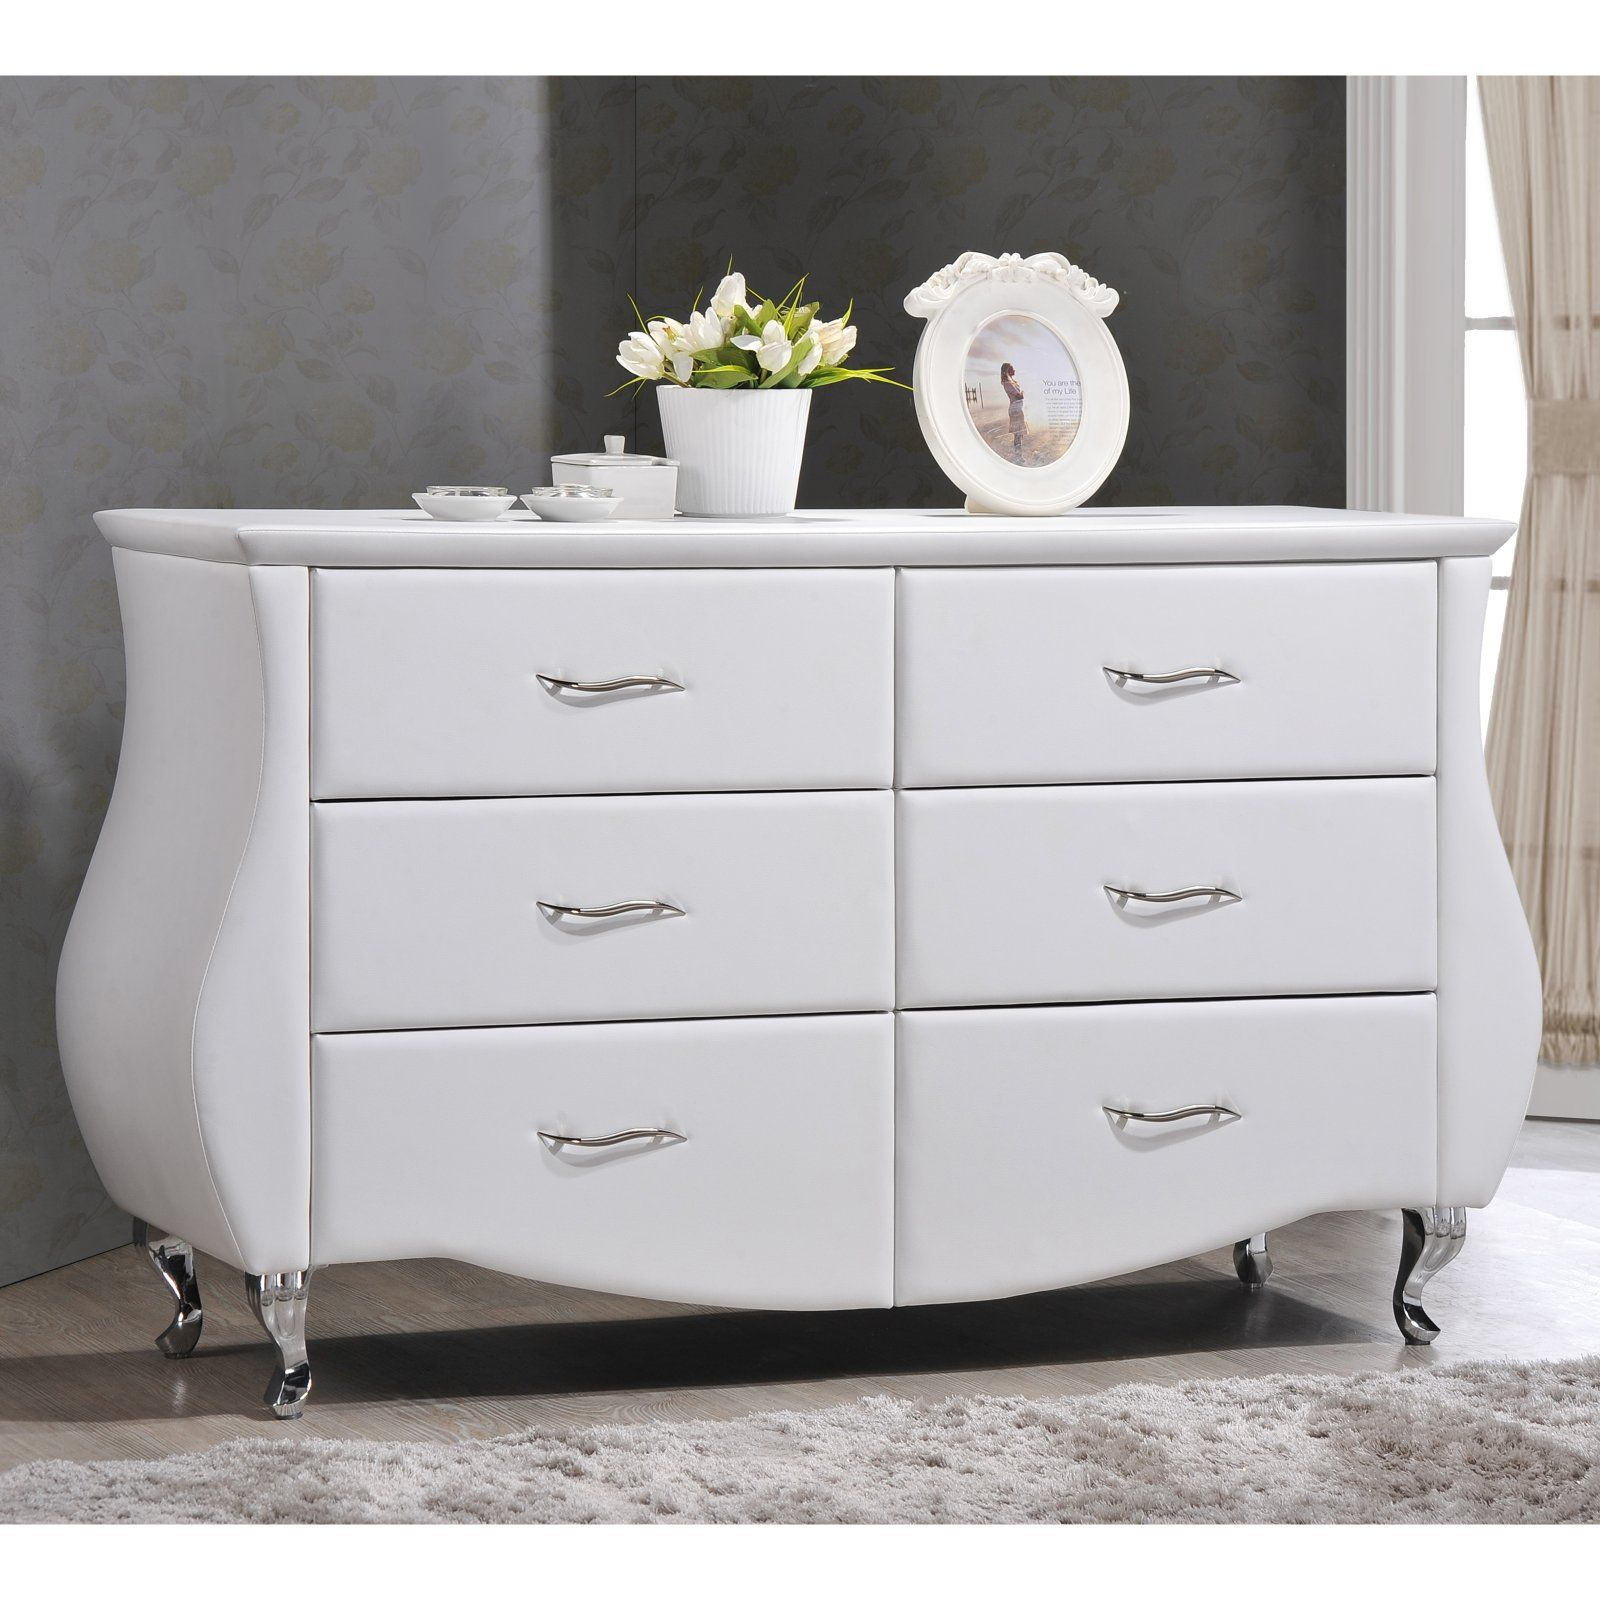 Baxton Studio Enzo 6 Drawer Faux Leather Dresser Bedroom